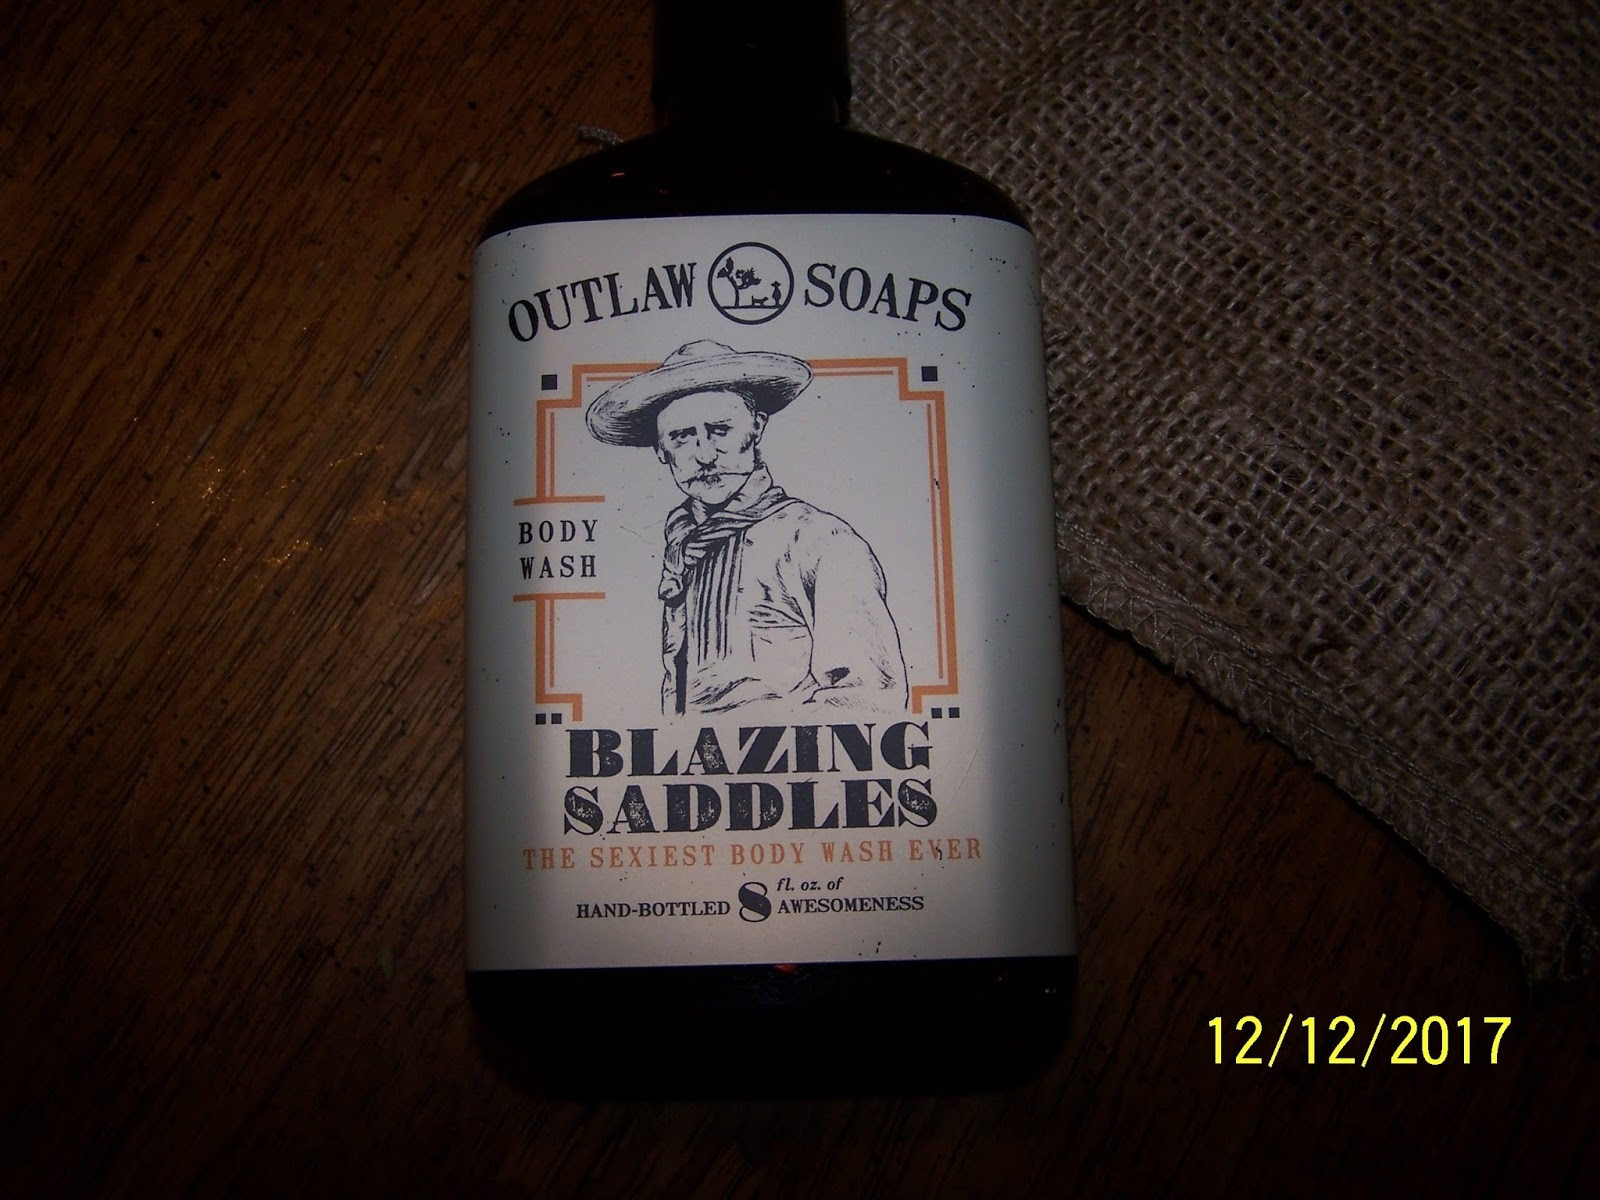 Outlaw Soaps Blazing Saddles Outlaw Soaps Blazing Saddles new picture